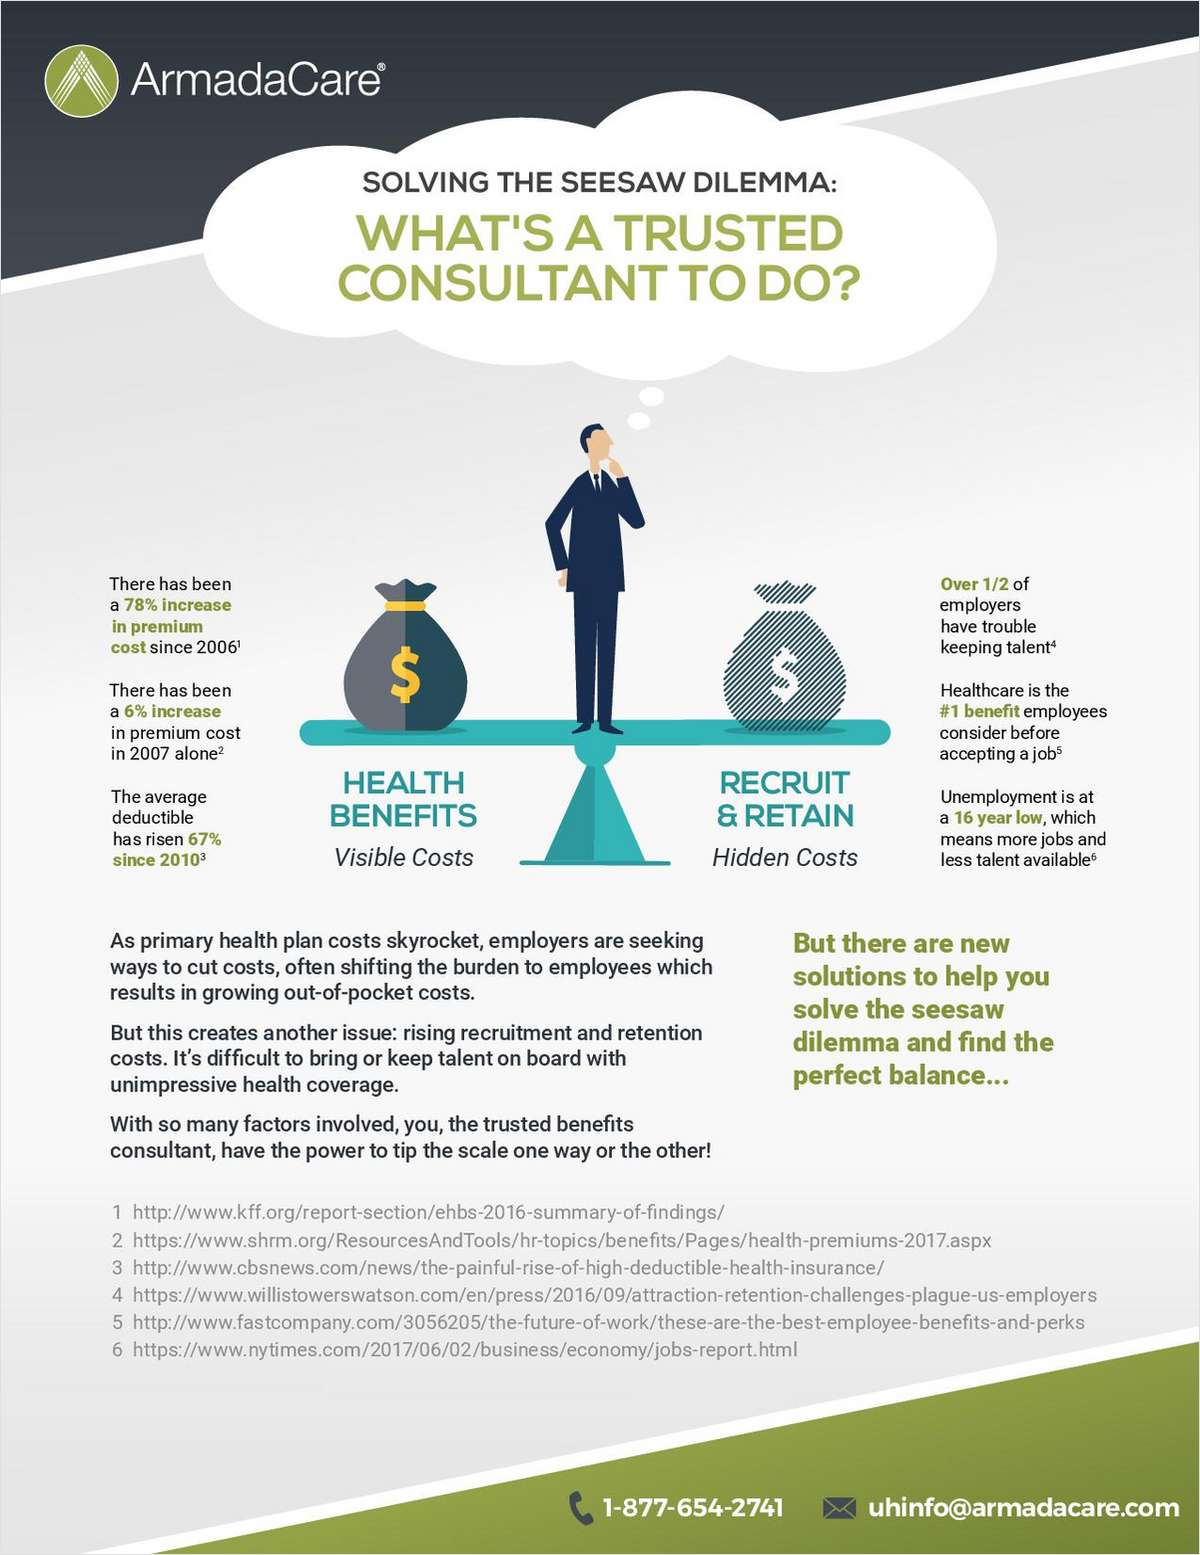 Solving the Healthcare Cost Seesaw Dilemma: What's a Trusted Consultant to Do?